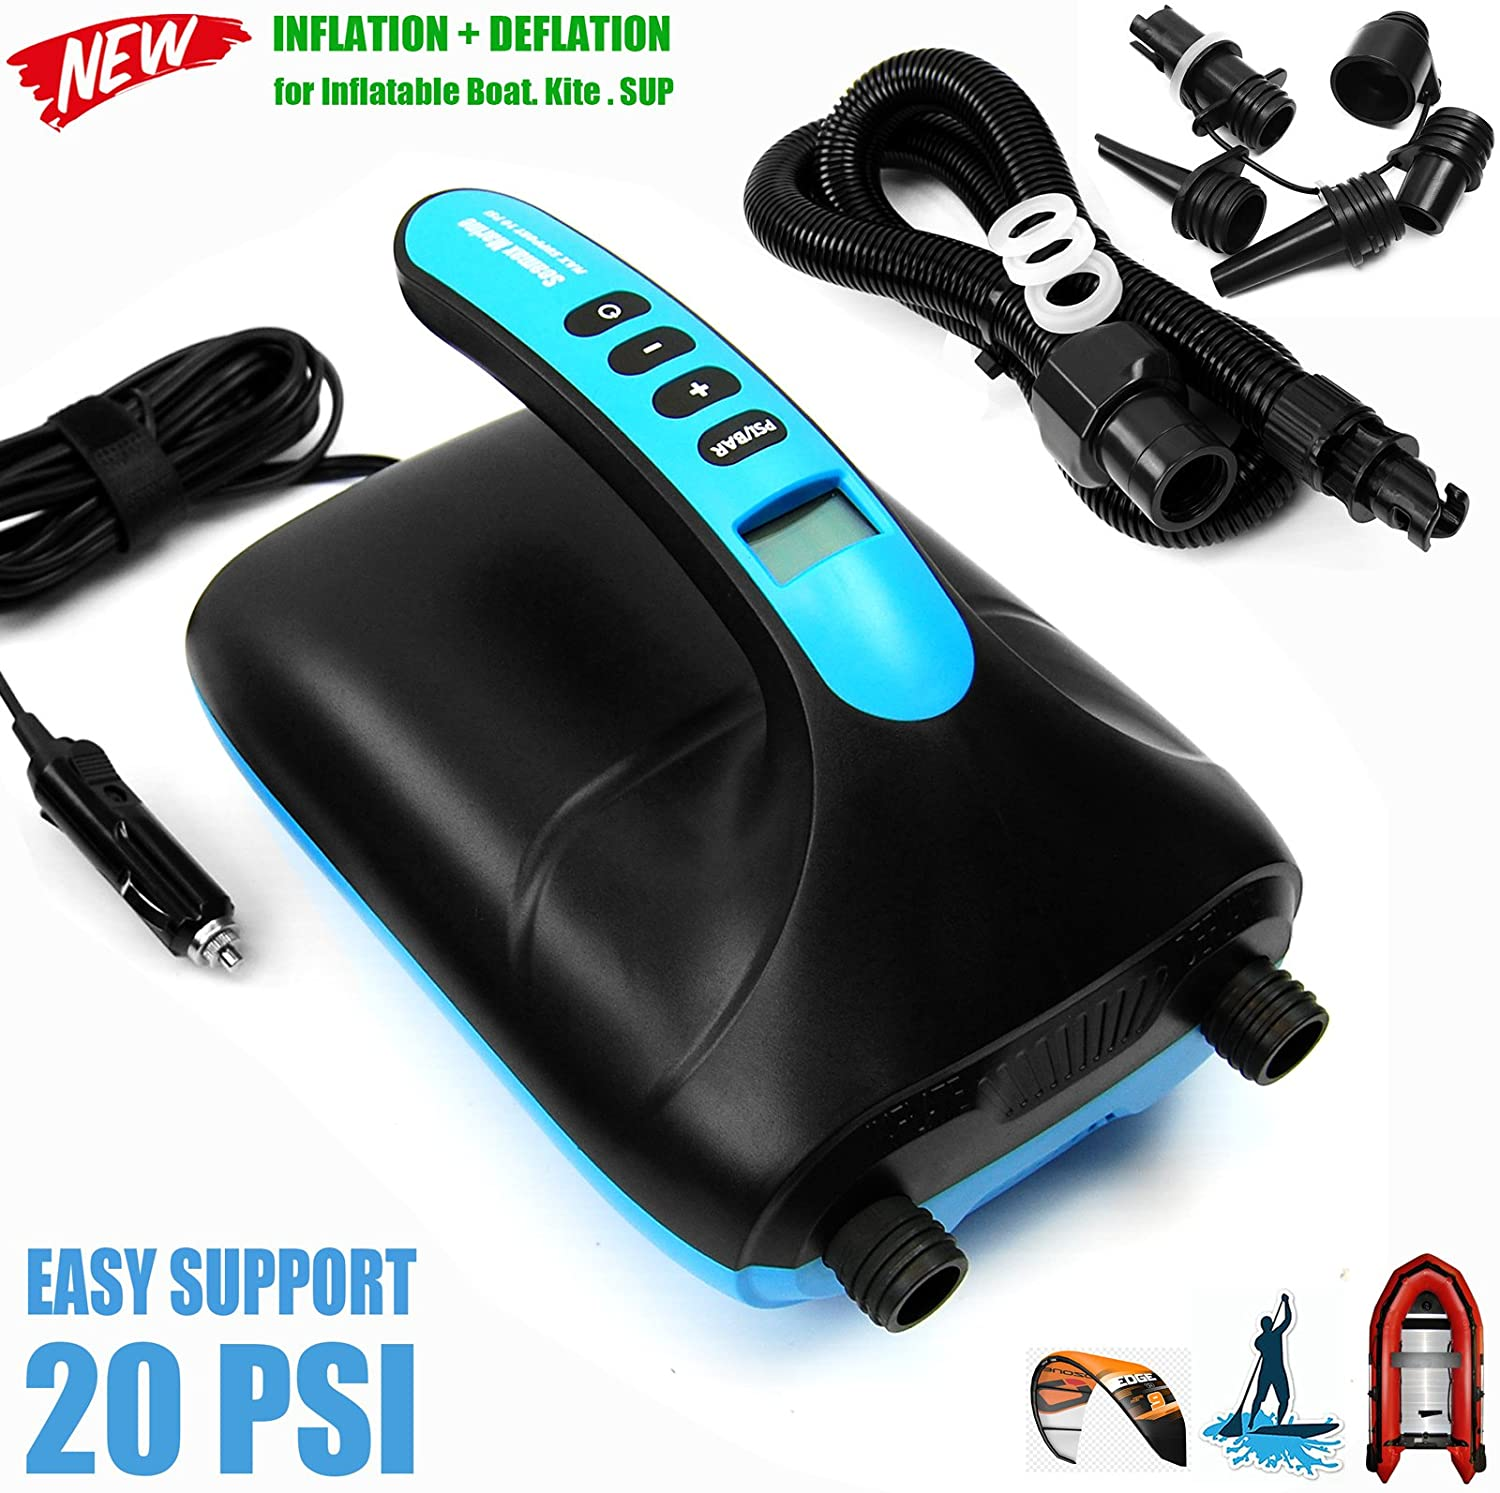 Seamax SUP20D 20PSI Double Stage Electric Air Pump for Inflatable SUP